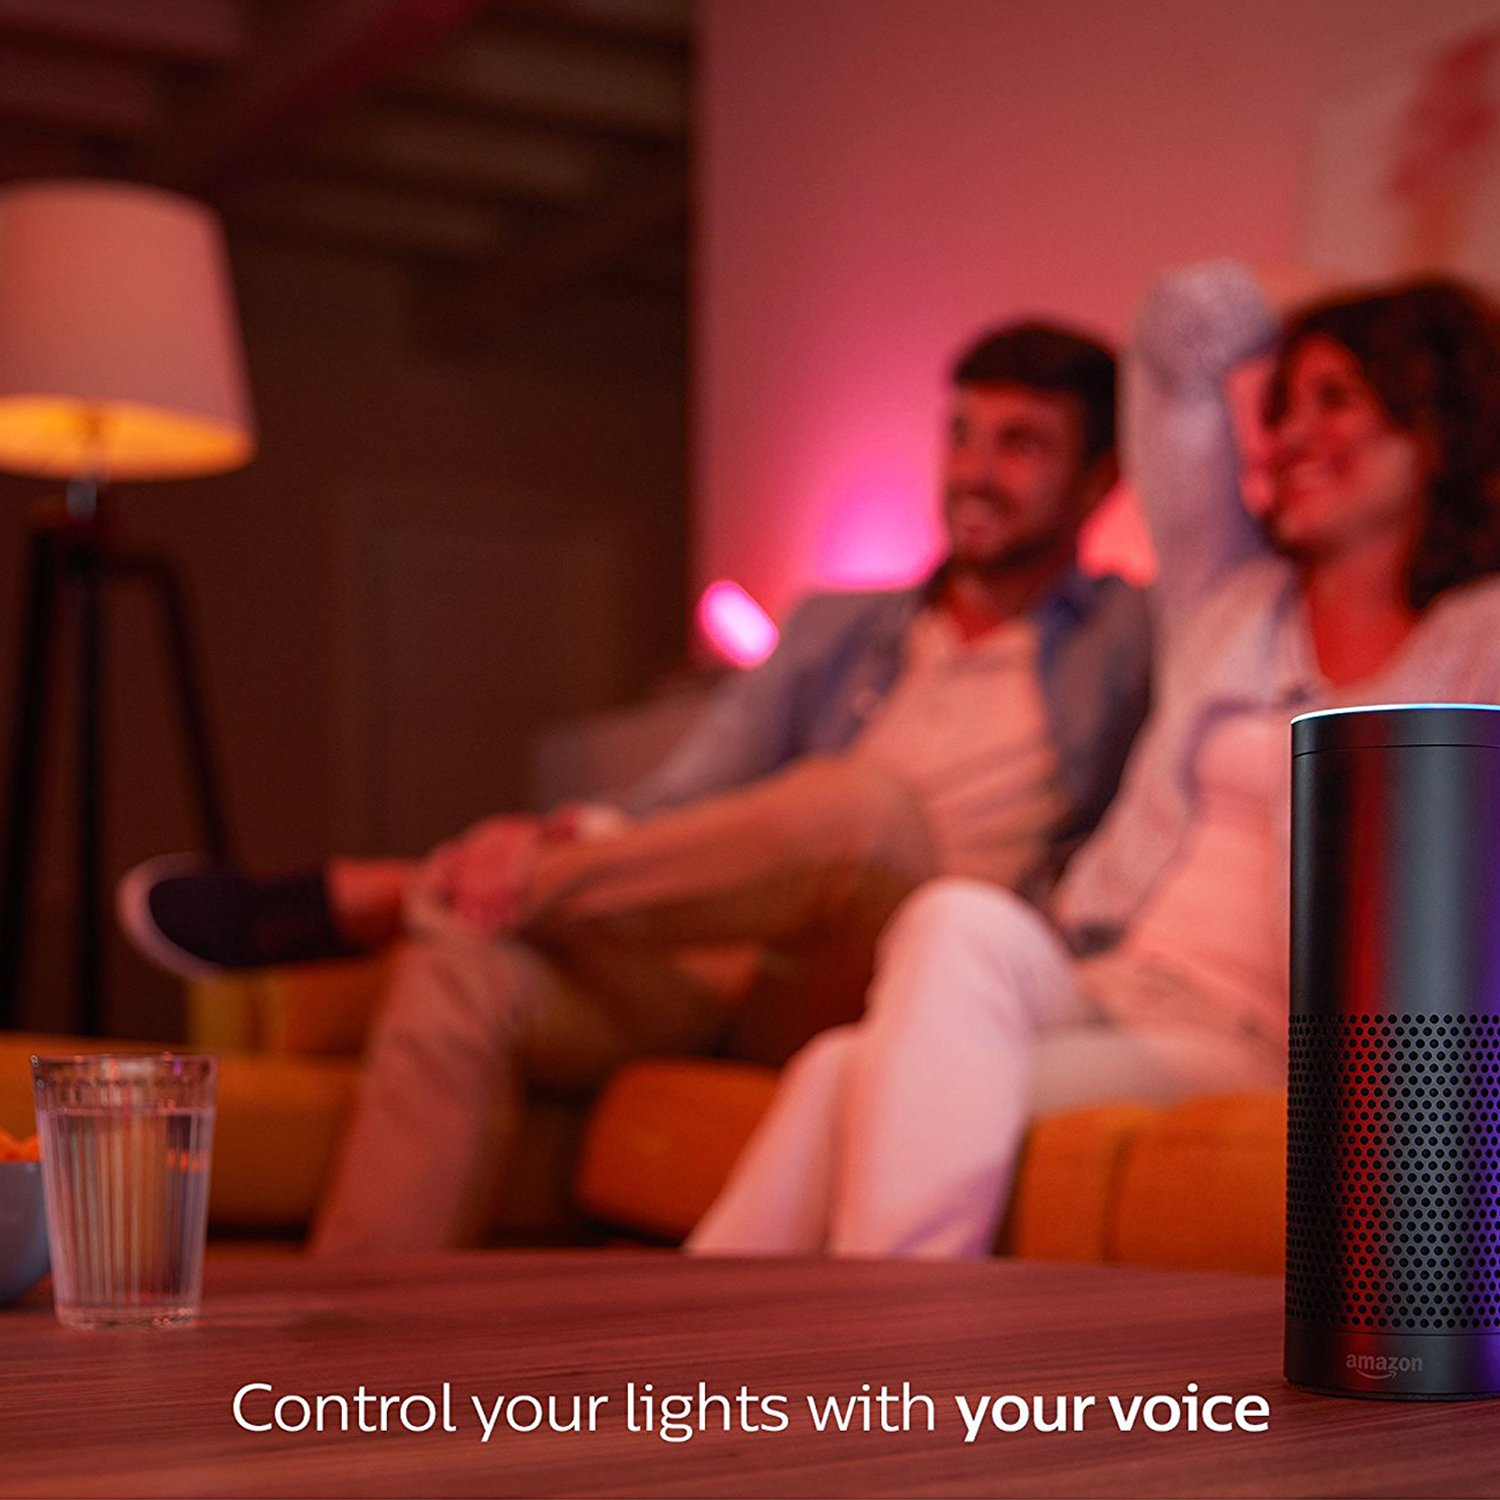 Philips Hue 464479 60W Equivalent White and Color Ambiance A19 Starter Kit, 3rd Generation, Works with Amazon Alexa by Philips (Image #5)